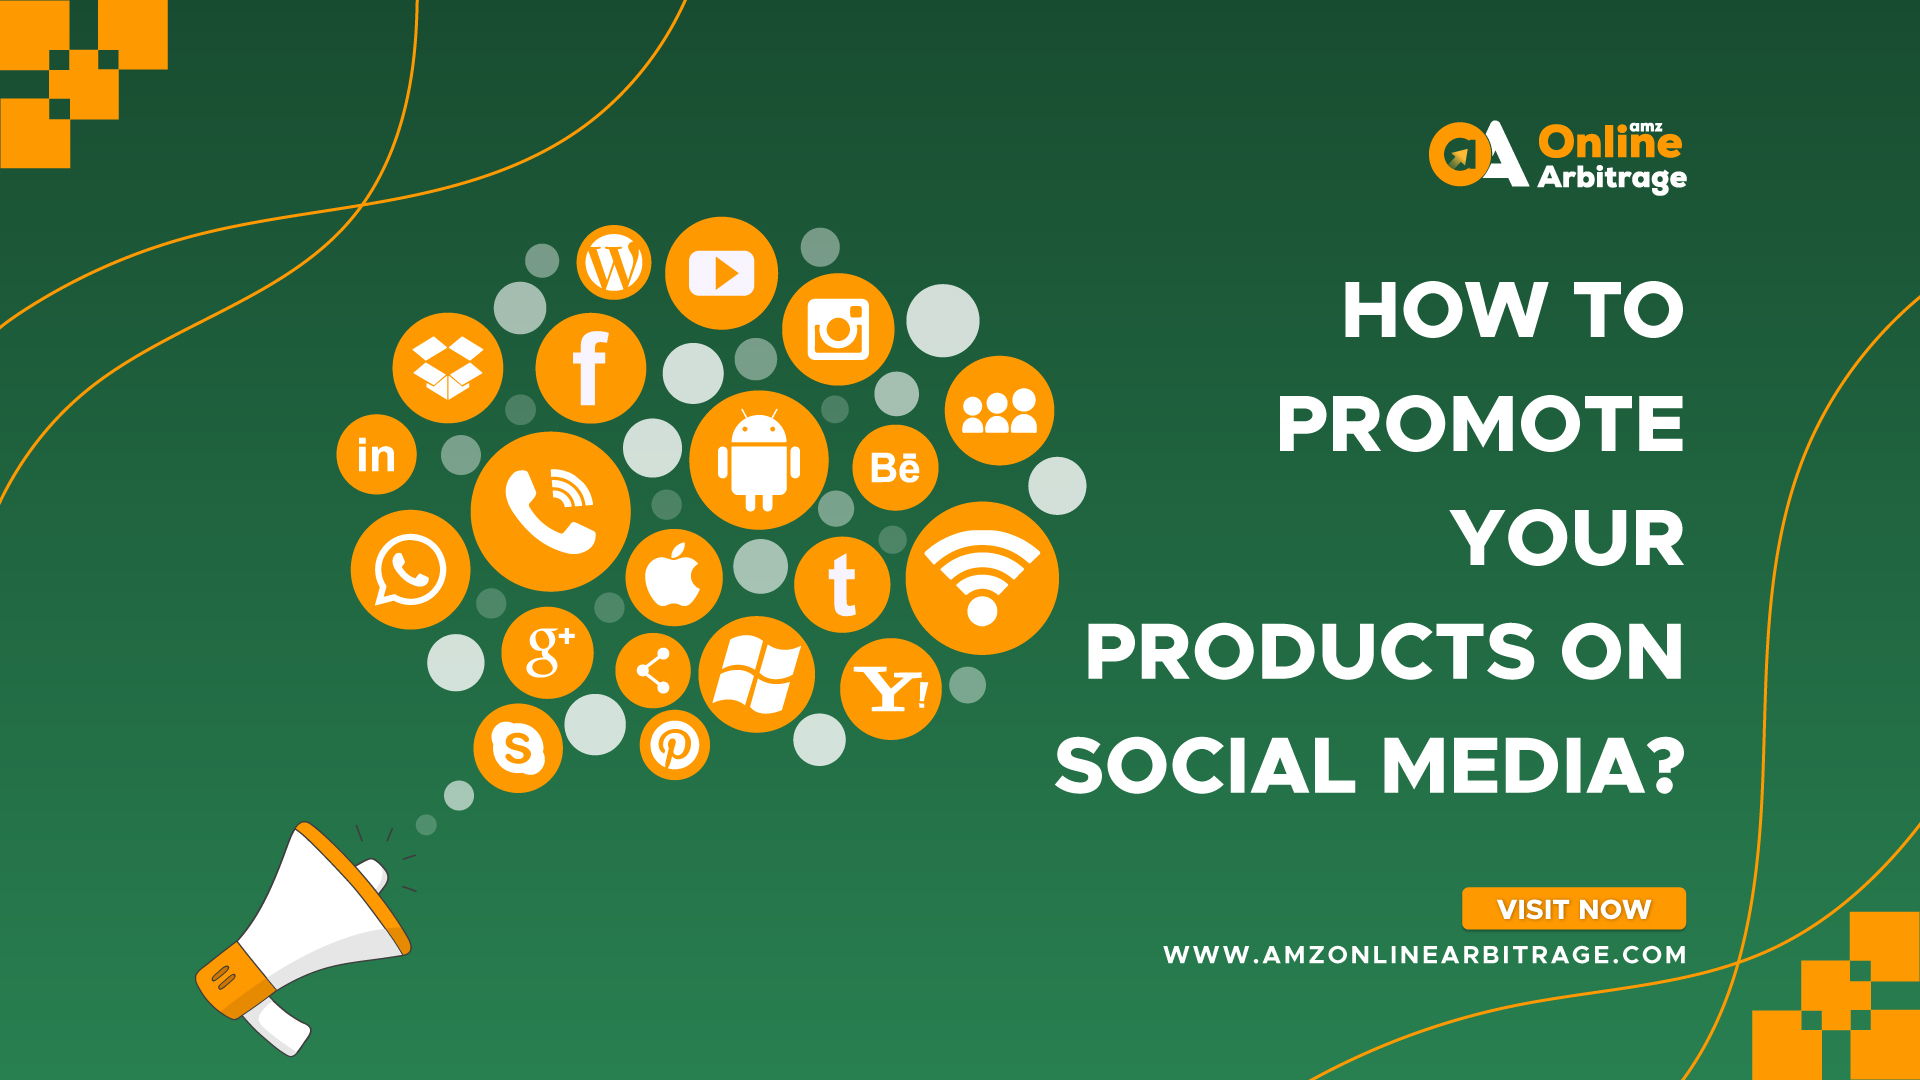 HOW TO PROMOTE YOUR PRODUCTS ON SOCIAL MEDIA?